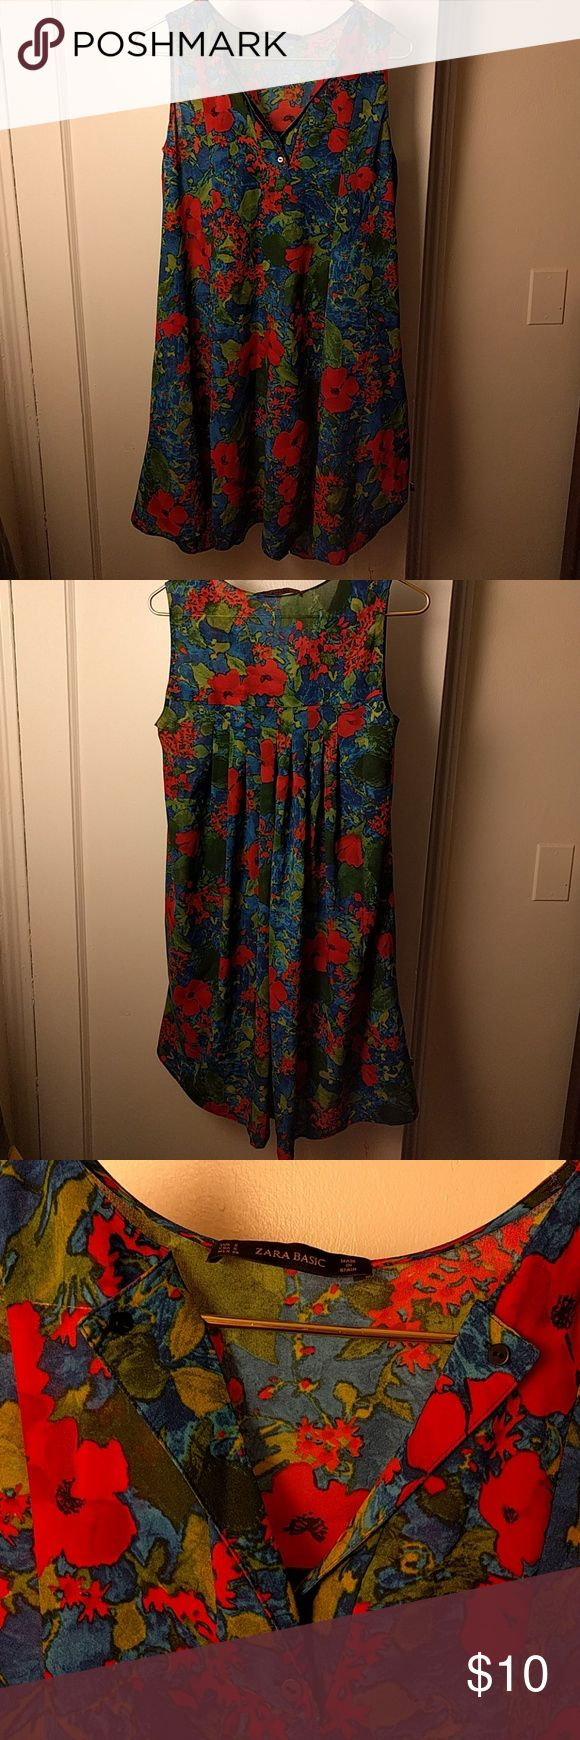 Floral sheer Zara Basic dress/cover-up Floaty, floral Zara Basic dress with pleated detail on the back. Sheer fabric, so best to layer over a slipdress or wear at the beach over a swimsuit. Can be kind of 60s in mood if styled right.  100% polyester. Good condition. Zara Dresses Midi